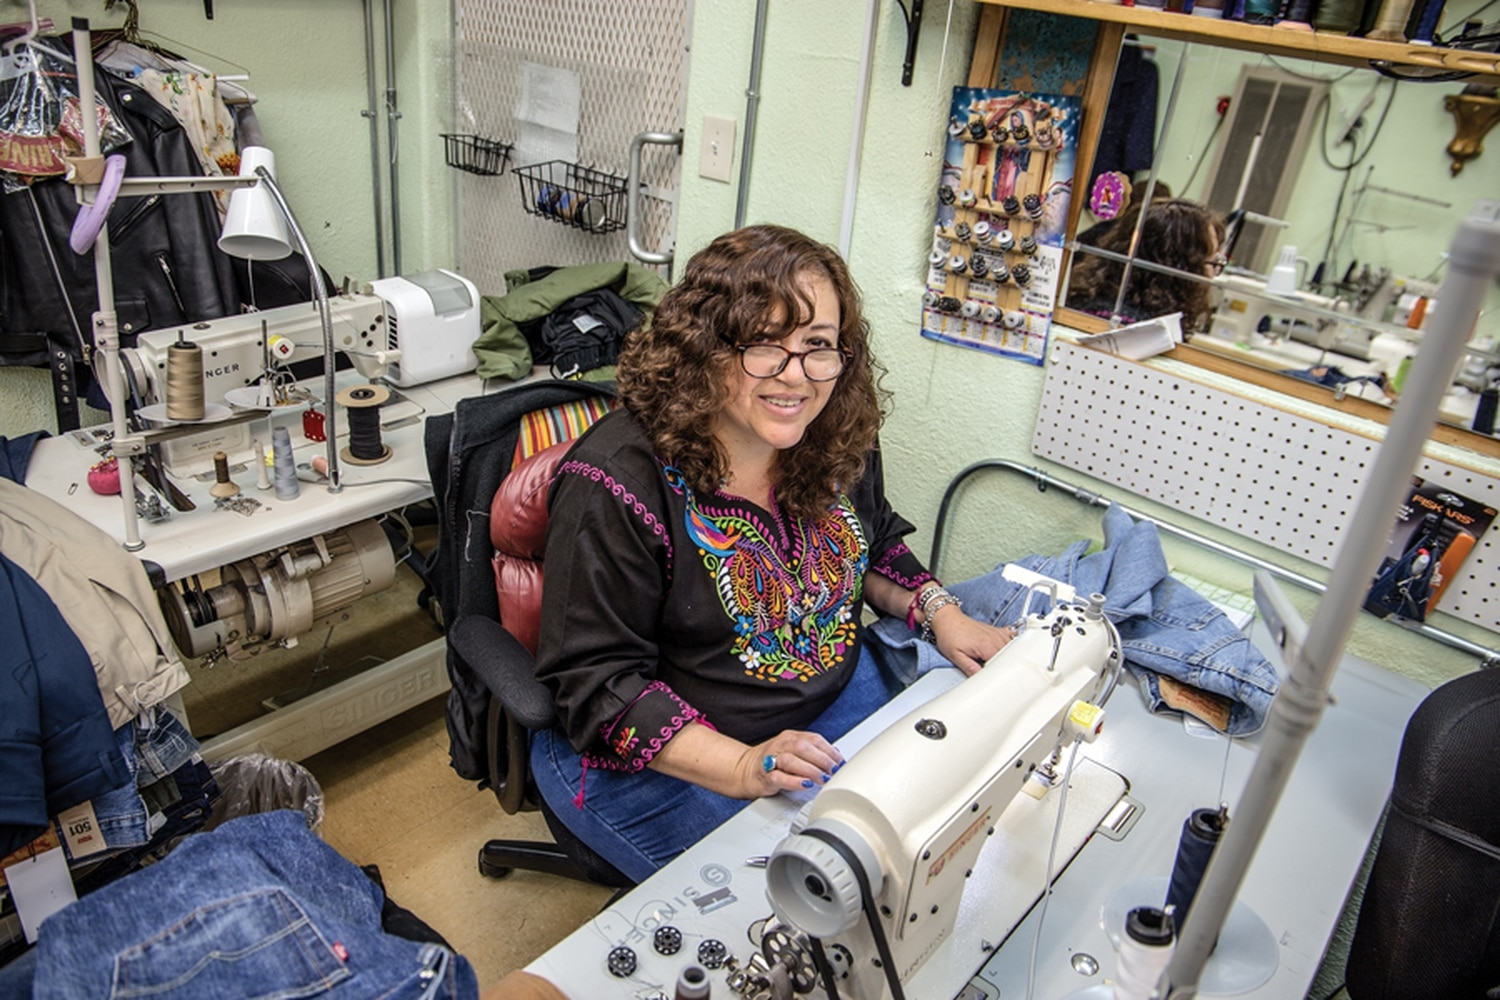 Laura Hermosillo now employs four other women in the business she launched in 2008 while she was living in a homeless shelter.